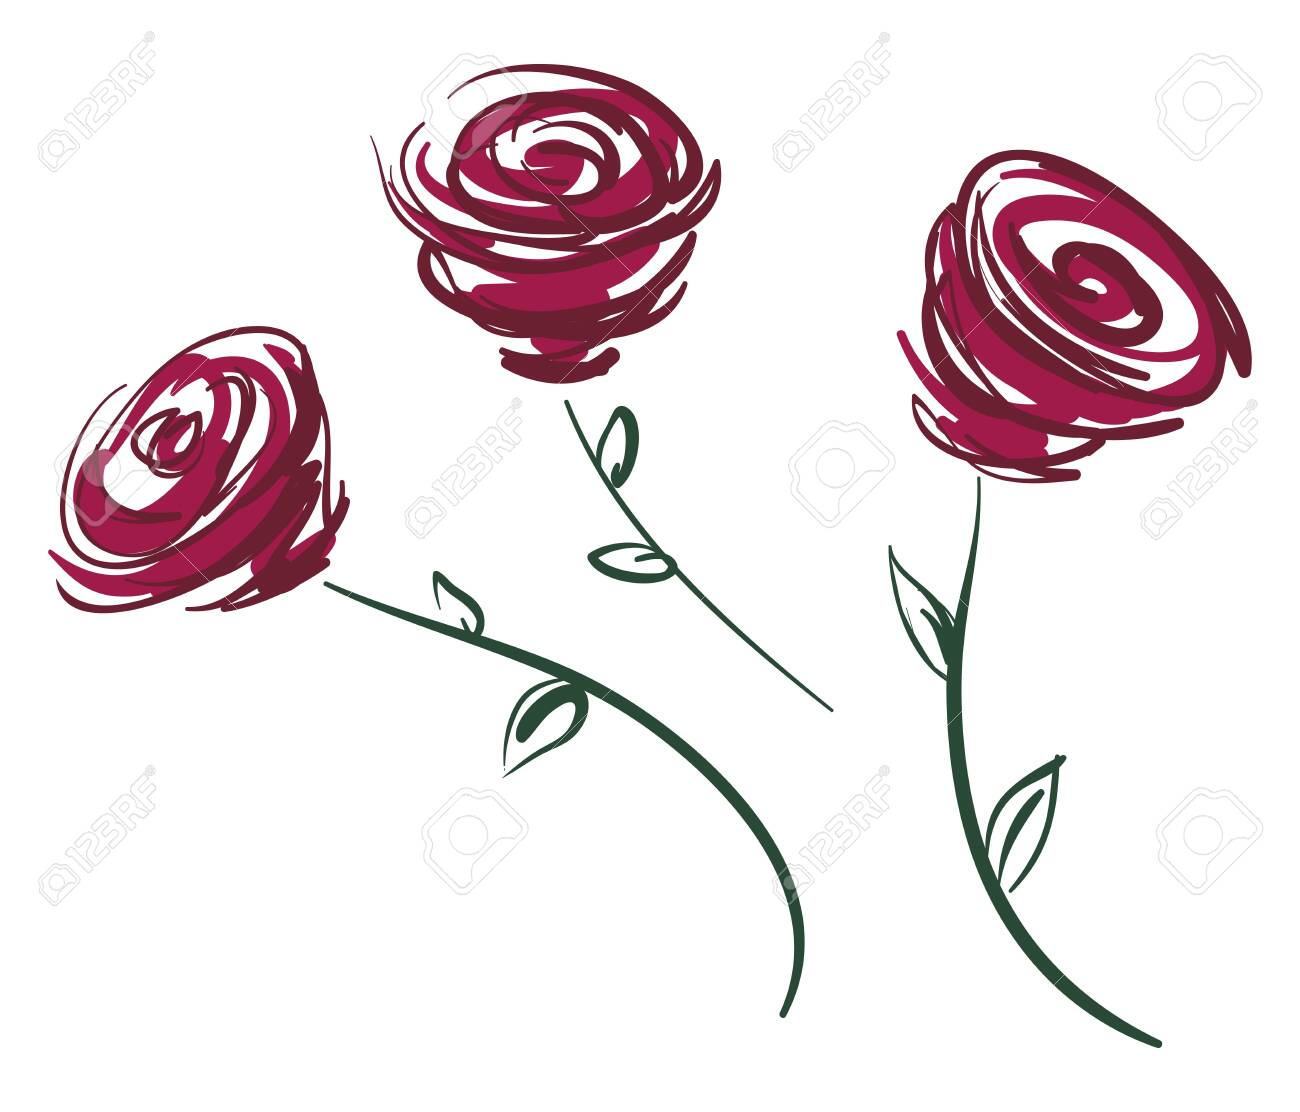 Painting Of Three Beautiful Red Rose Stem Vector Color Drawing Royalty Free Cliparts Vectors And Stock Illustration Image 123461778